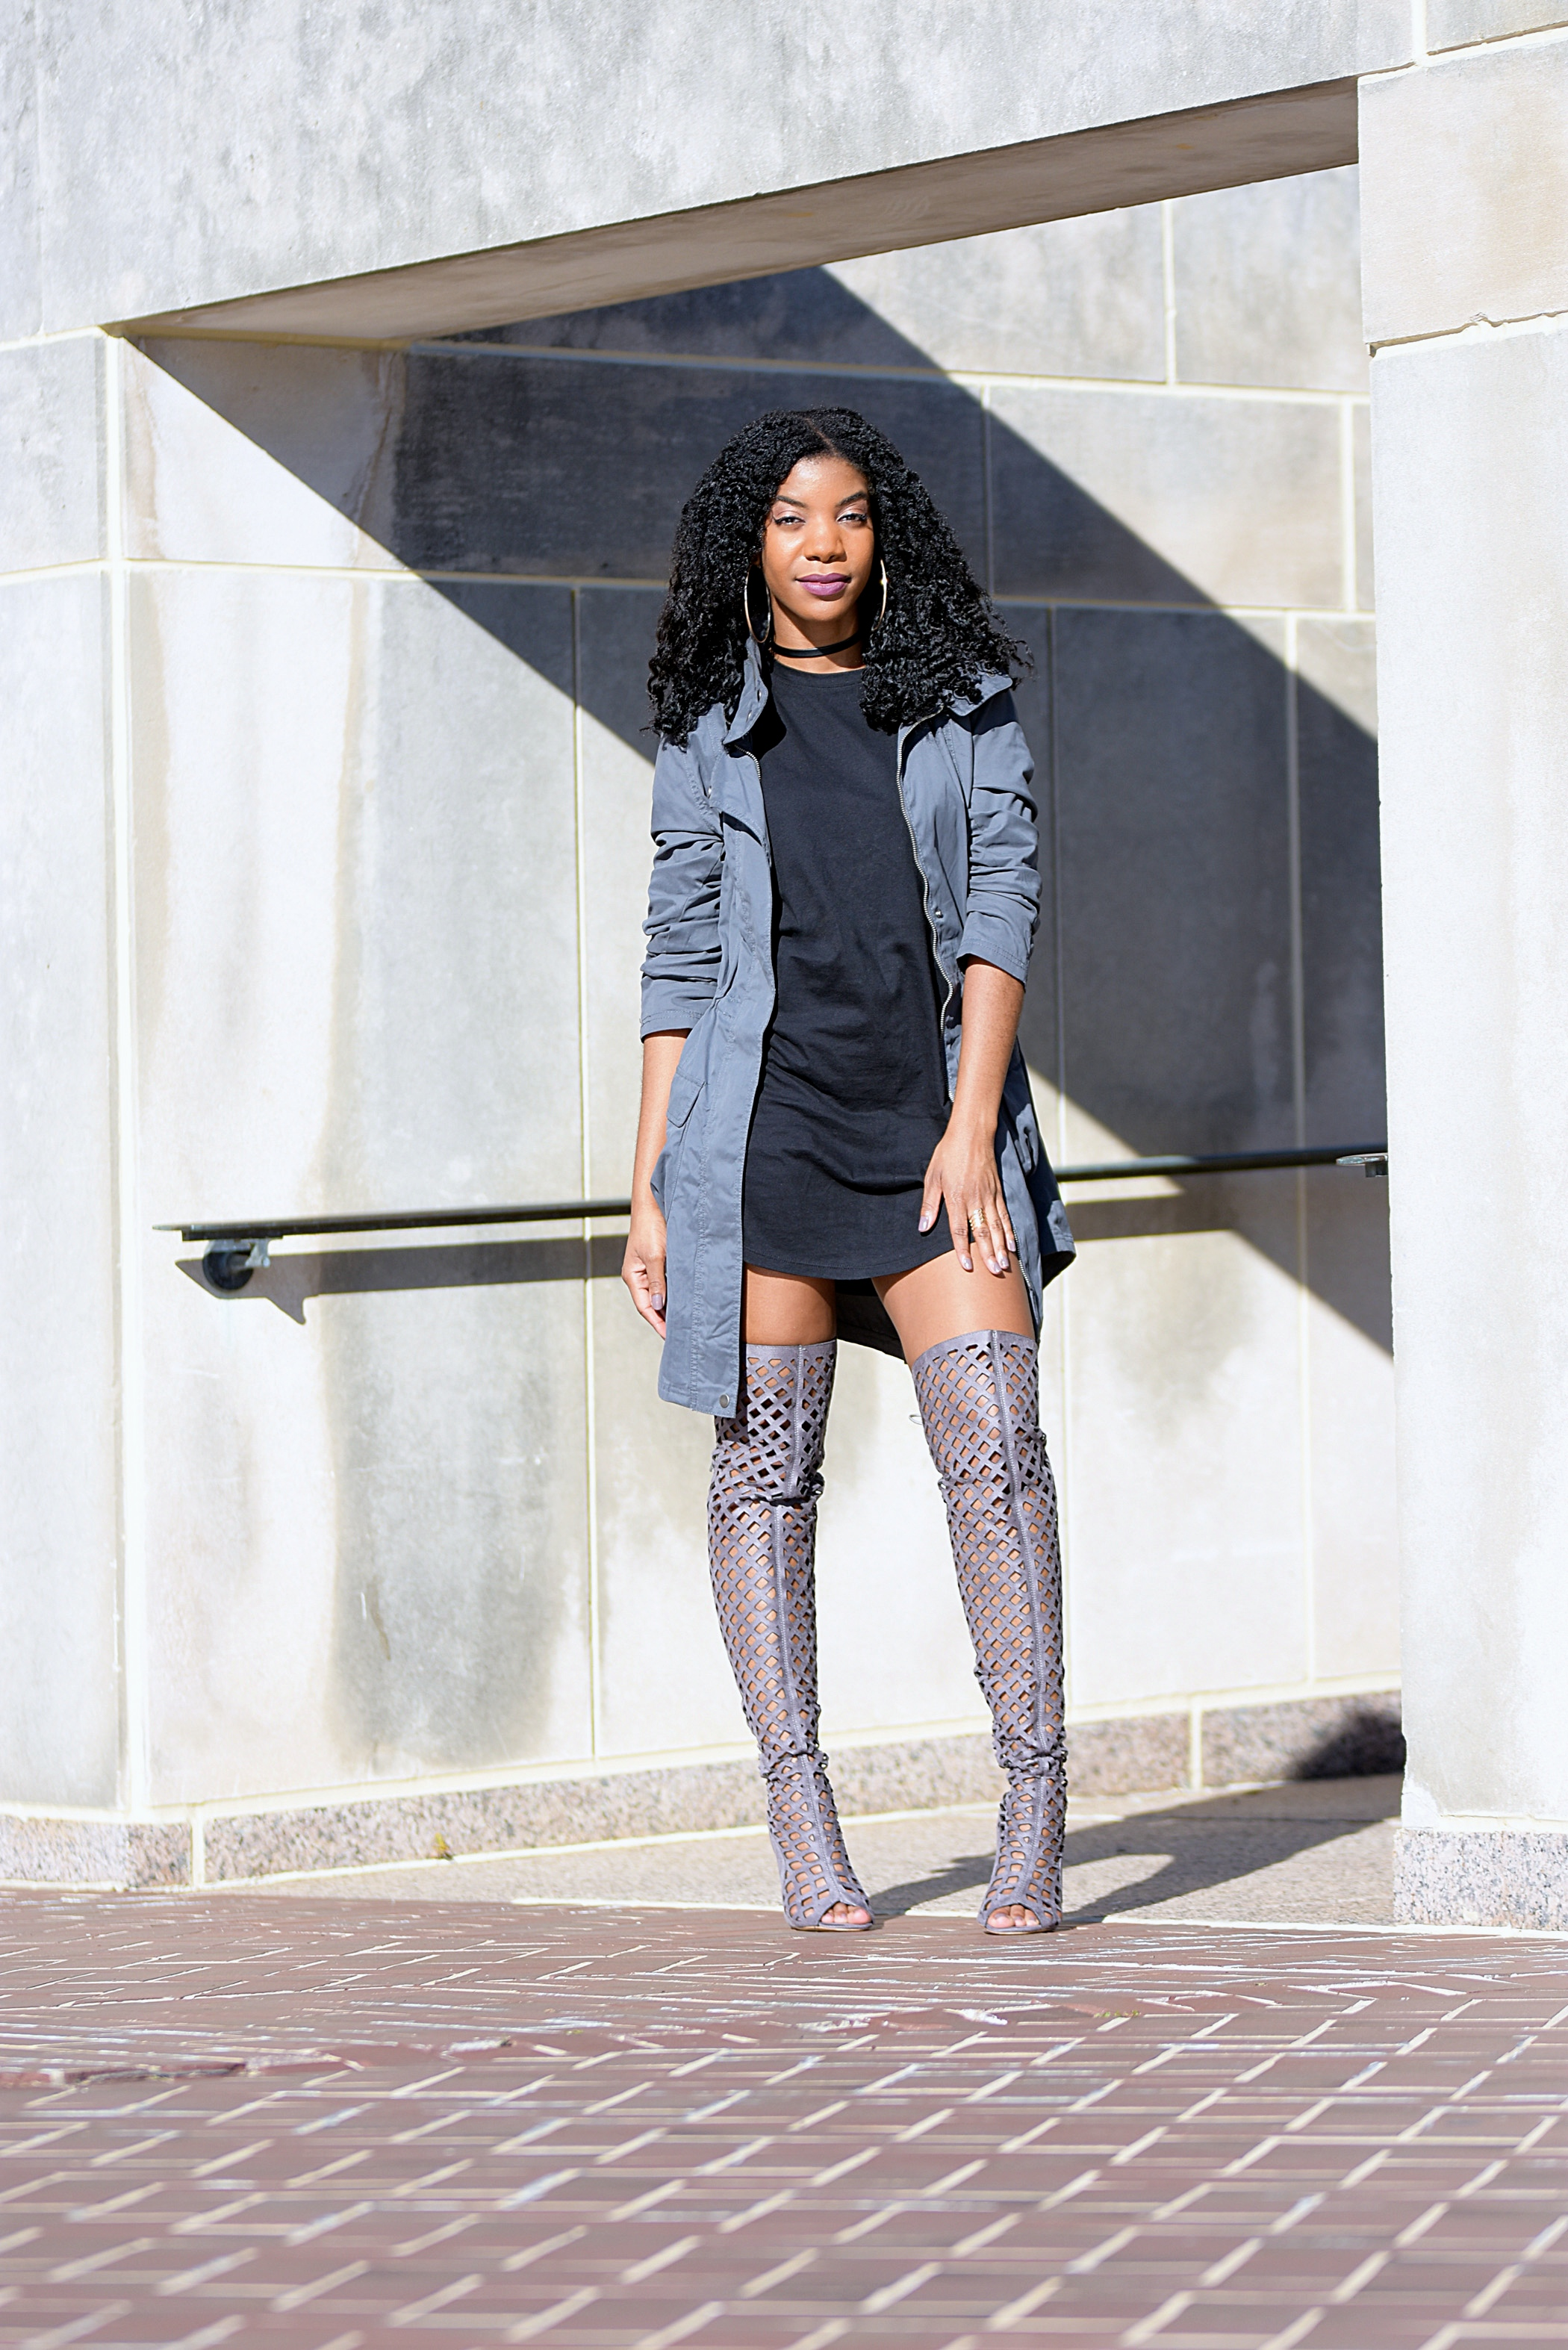 39430789a526 gray target military jacket, gray amiclubwear thigh high cutout boots,  black forever21 tshirt dress